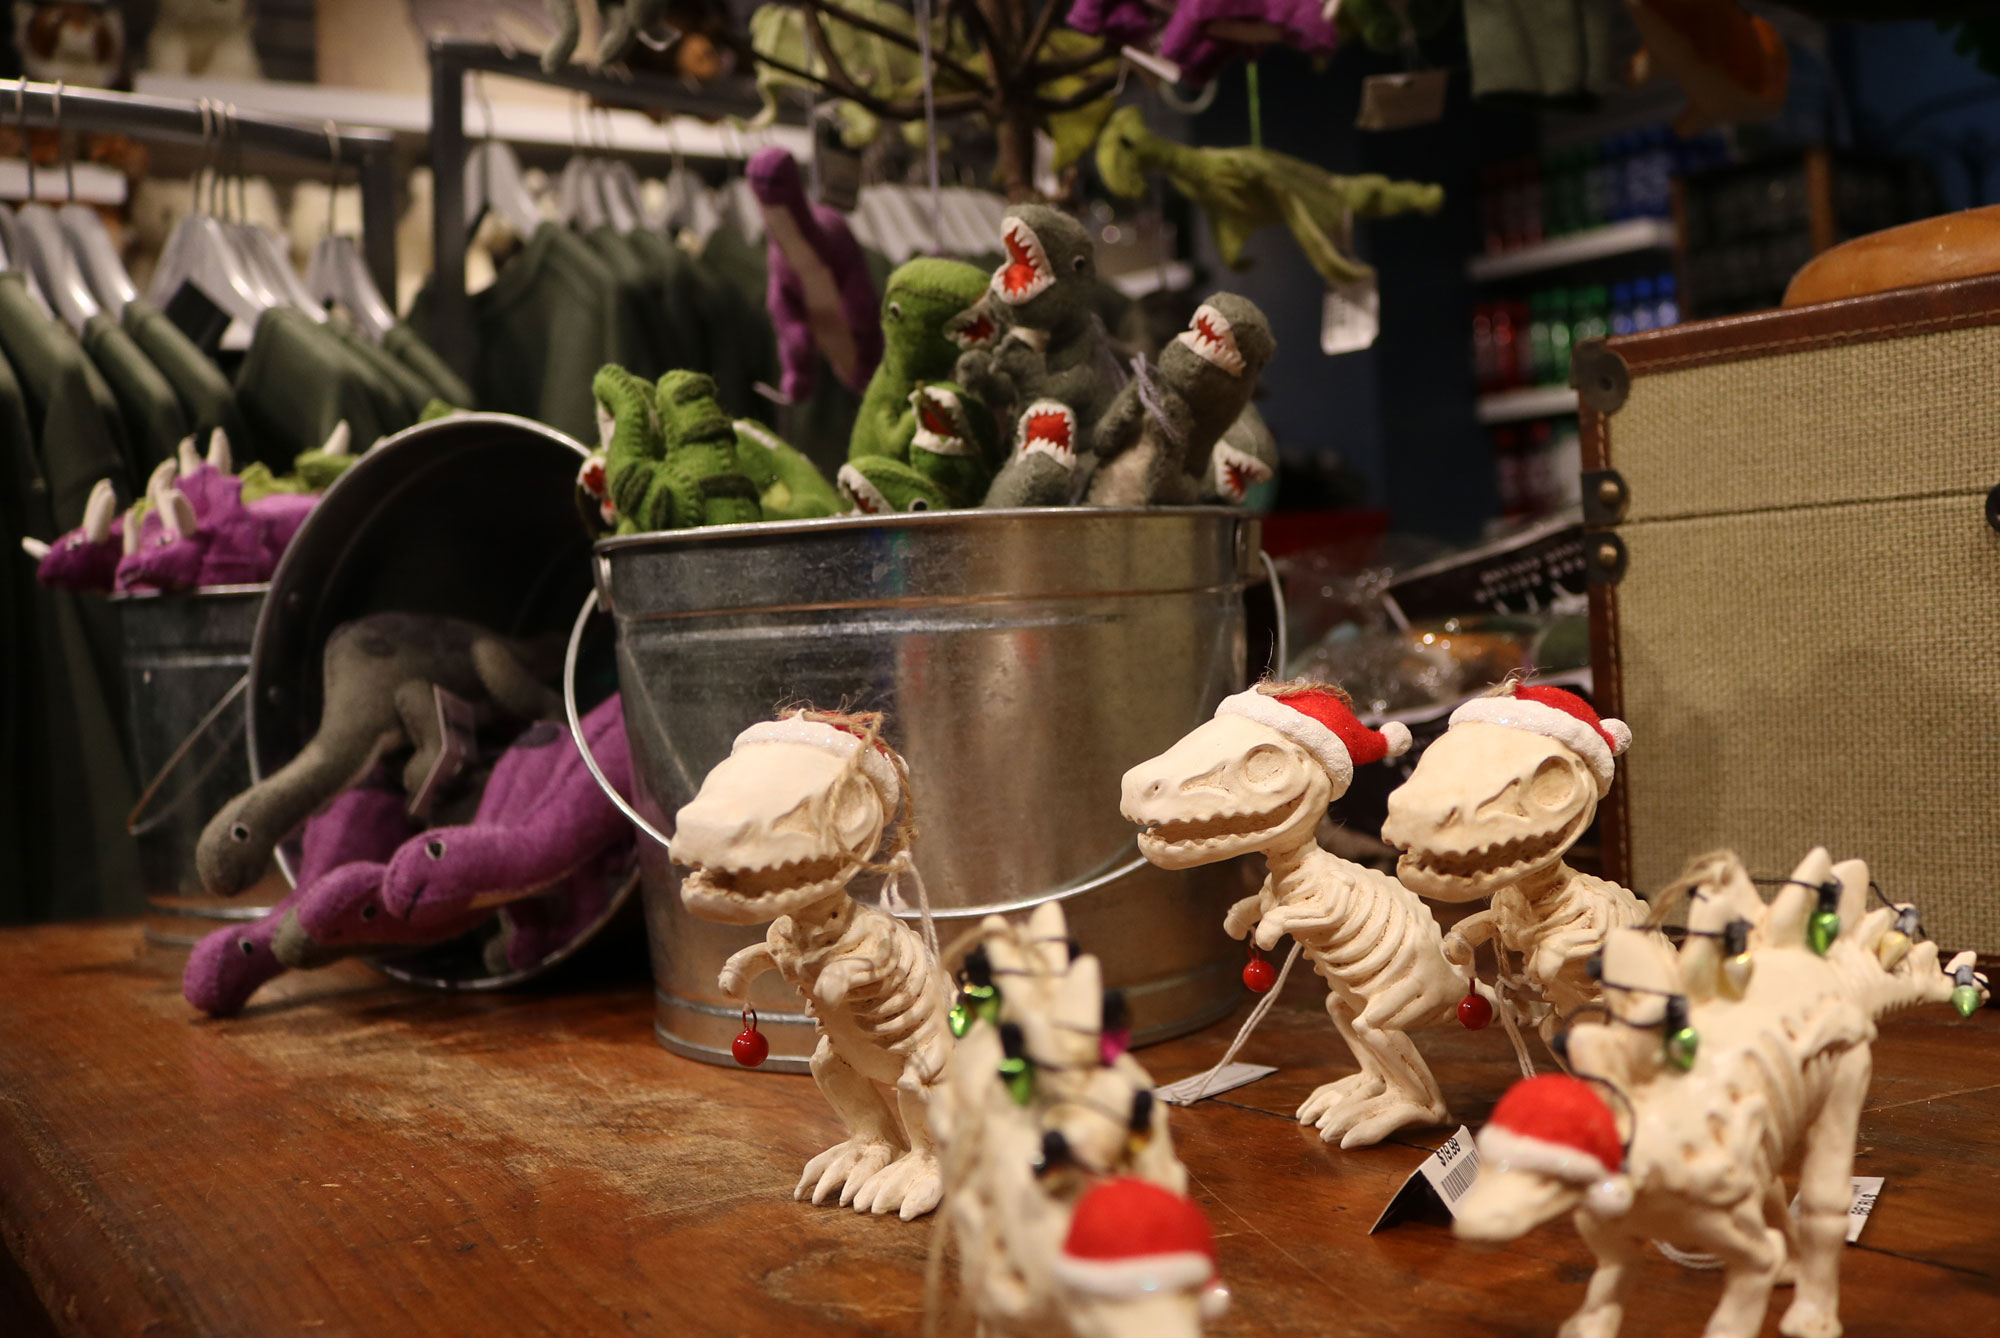 Dinosaur Christmas tree ornaments, skeletons with Santa hat